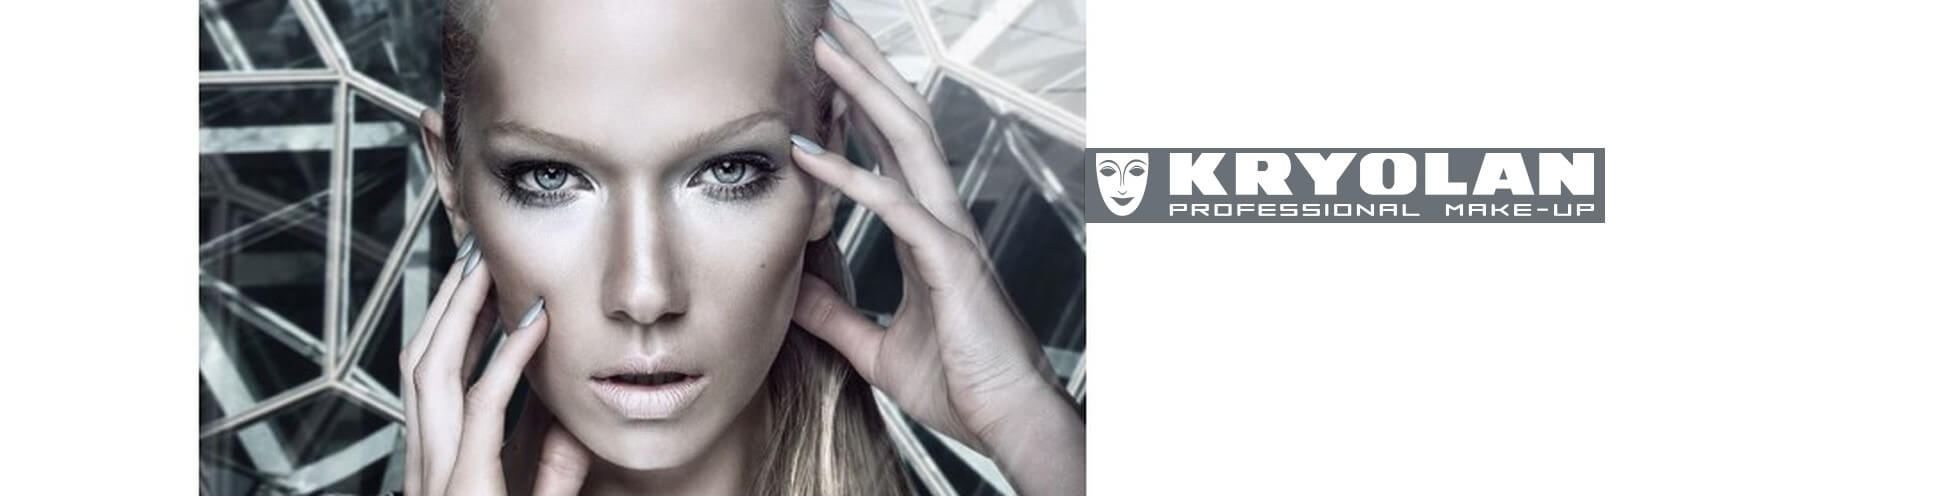 kryolan-front-page-1